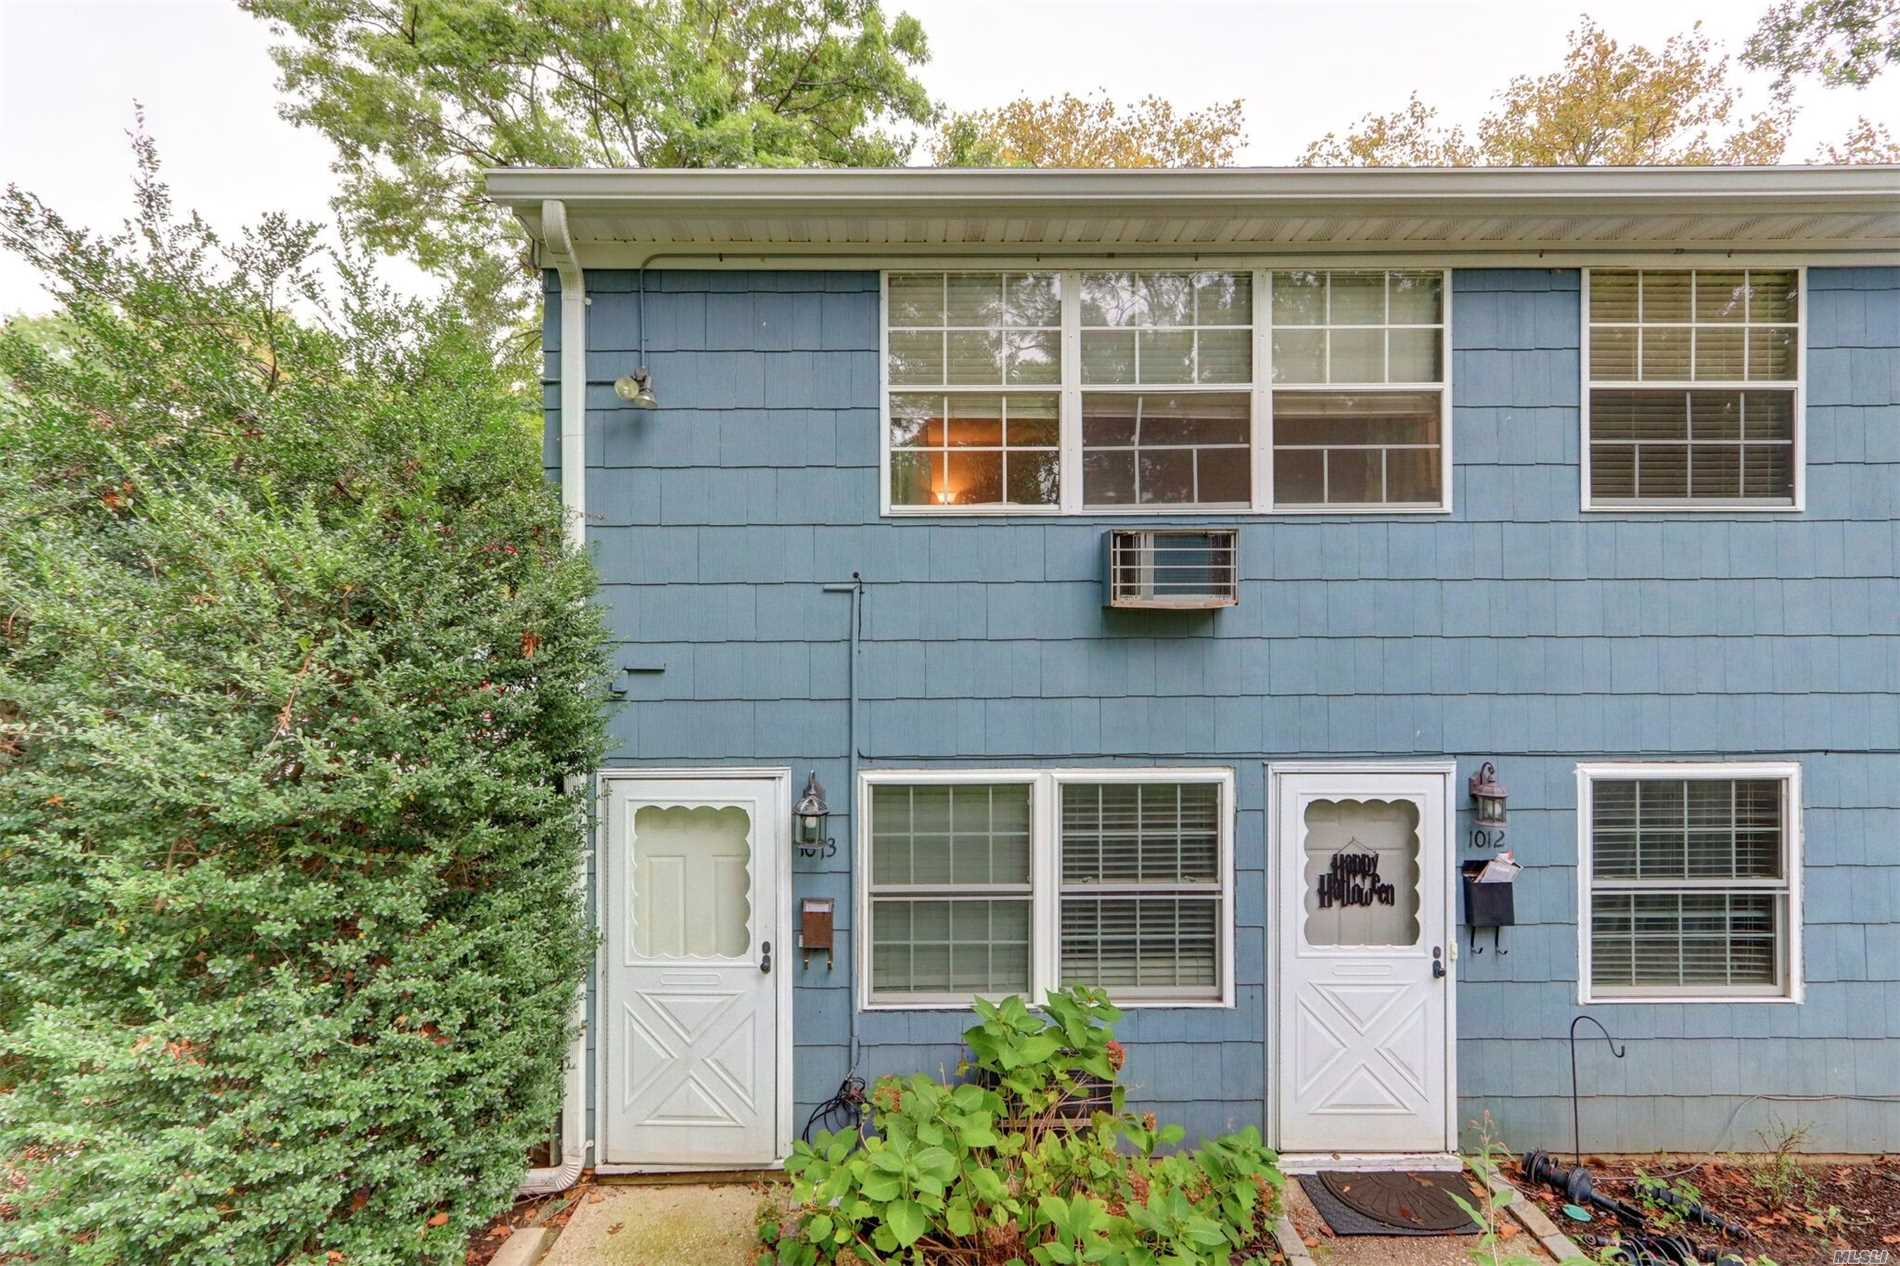 Property for sale at 1013 Towne House Vlg, Hauppauge,  NY 11749